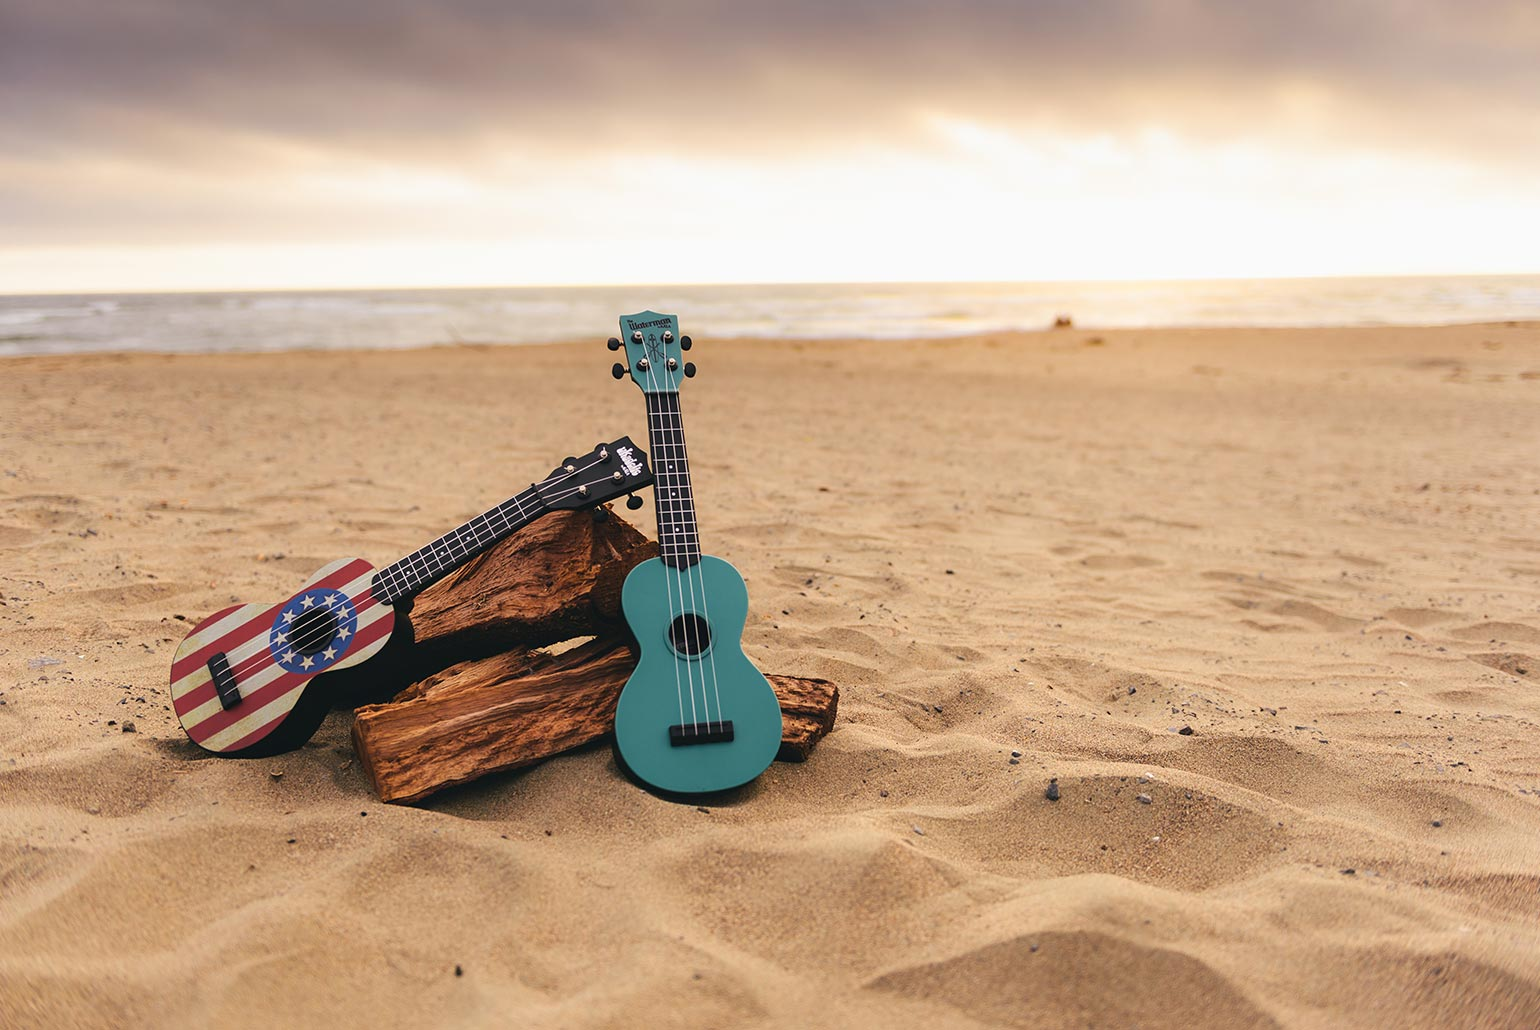 Kala Ukadelic and Waterman Ukulele at the Beach